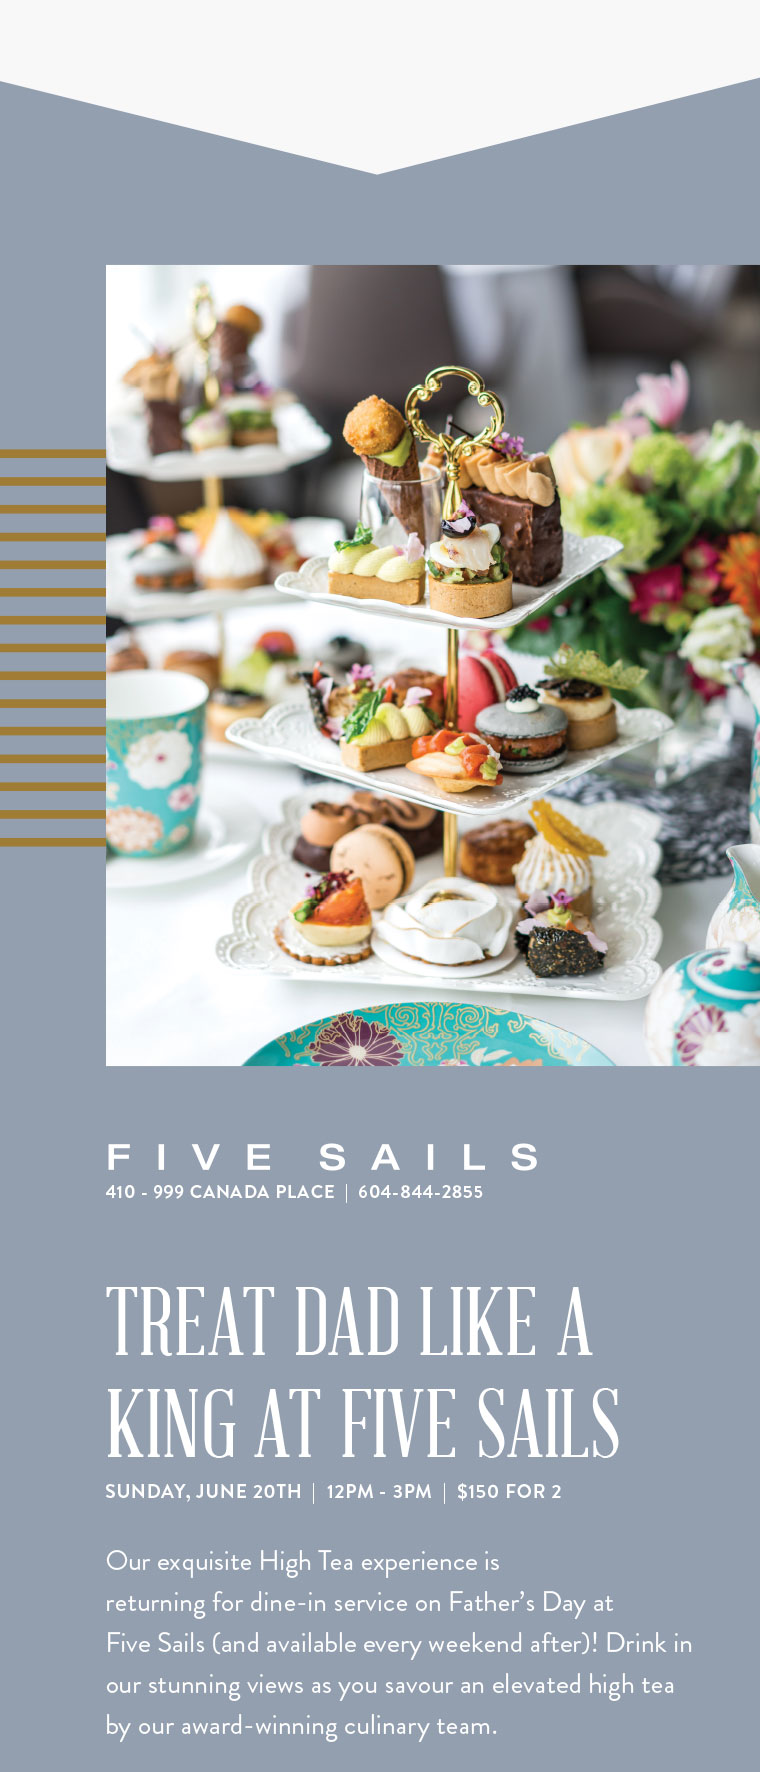 TREAT DAD LIKE A KING AT FIVE SAILS SUNDAY, JUNE 20TH  |  $150 FOR 2  Our exquisite High Tea experience is  returning for dine-in service on Father's Day at  Five Sails (and available every weekend after)! Drink in our stunning views as you savour an elevated high tea by our award-winning culinary team.